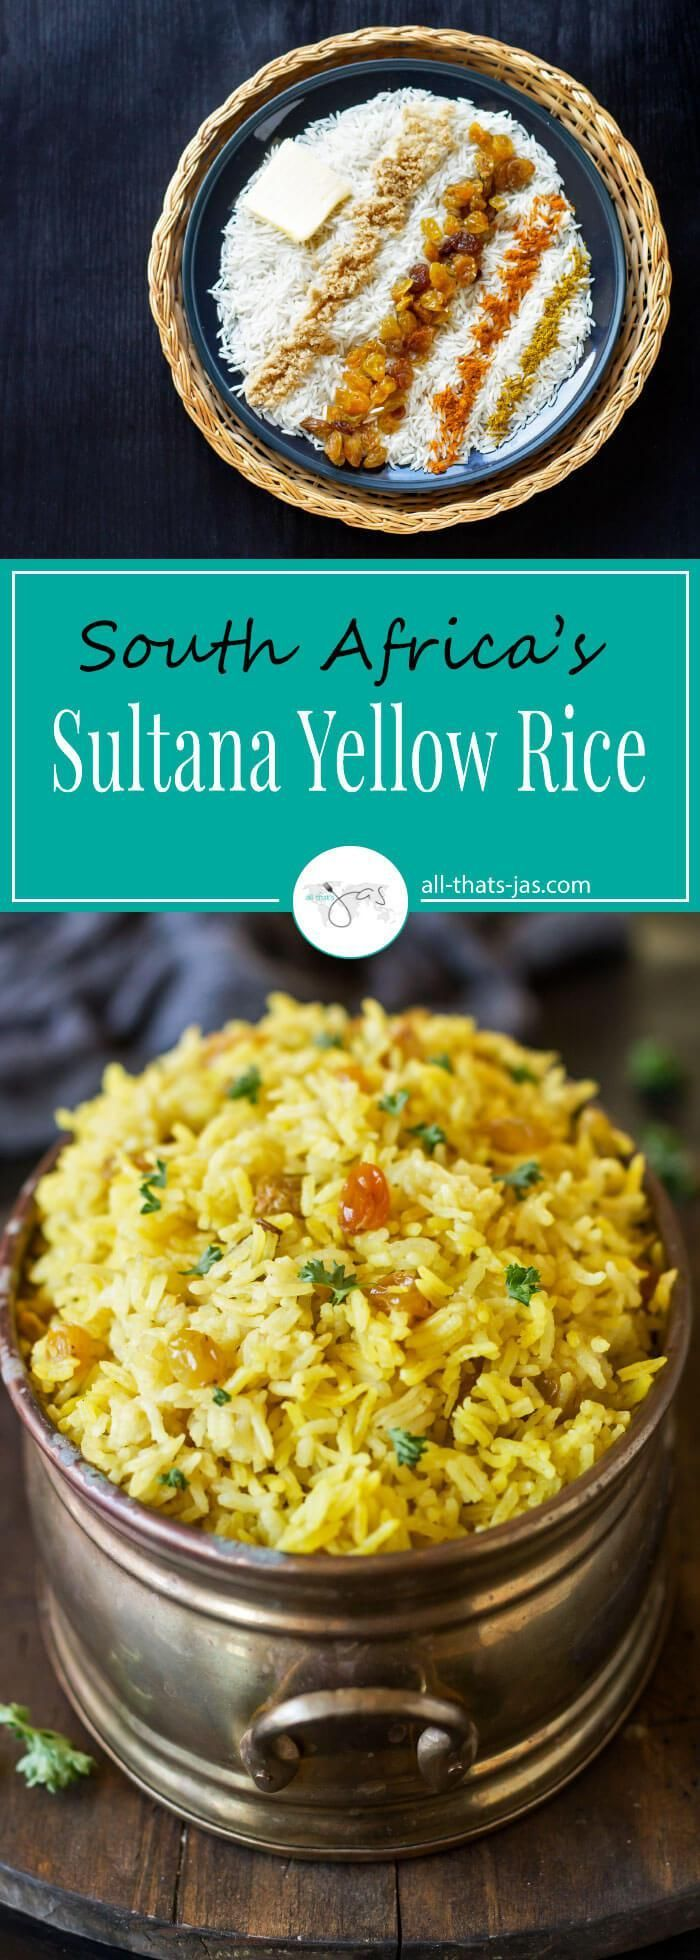 South Africa's sultana yellow rice with turmeric and curry has a fragrant, wonderful aroma and is a great accompaniment to just about any meal.